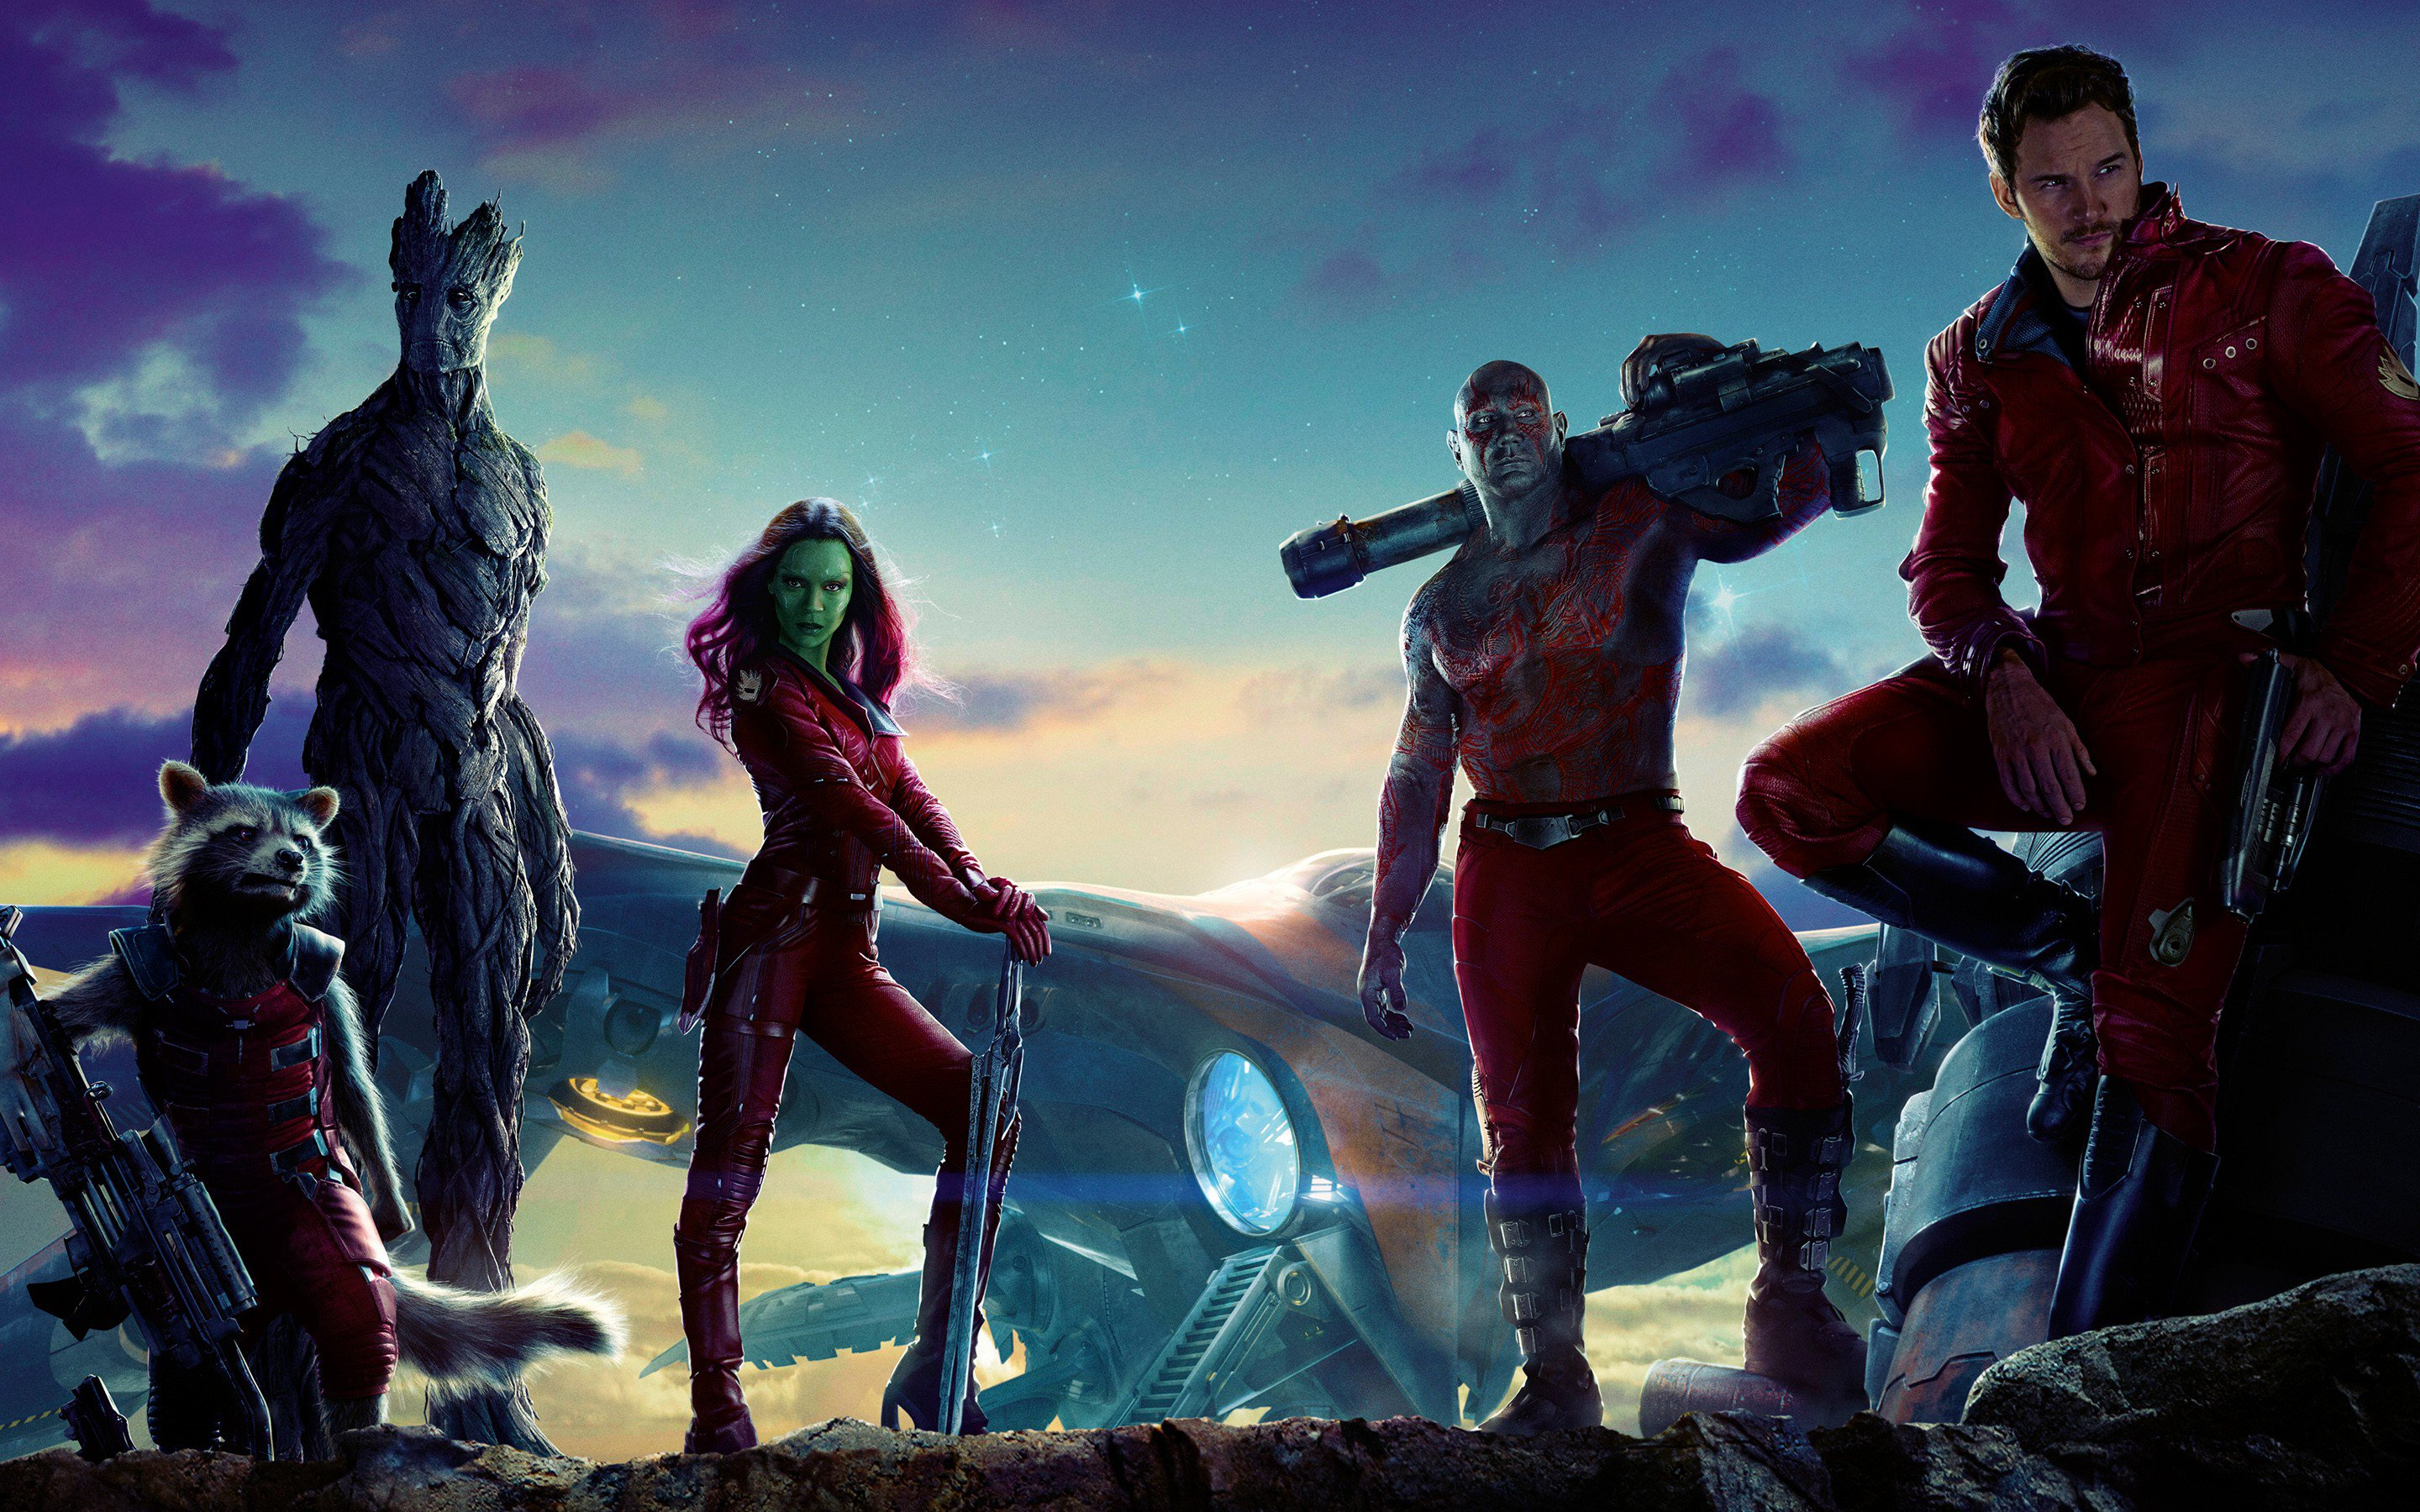 1366x768 Guardians Of The Galaxy Pc 1366x768 Resolution Hd 4k